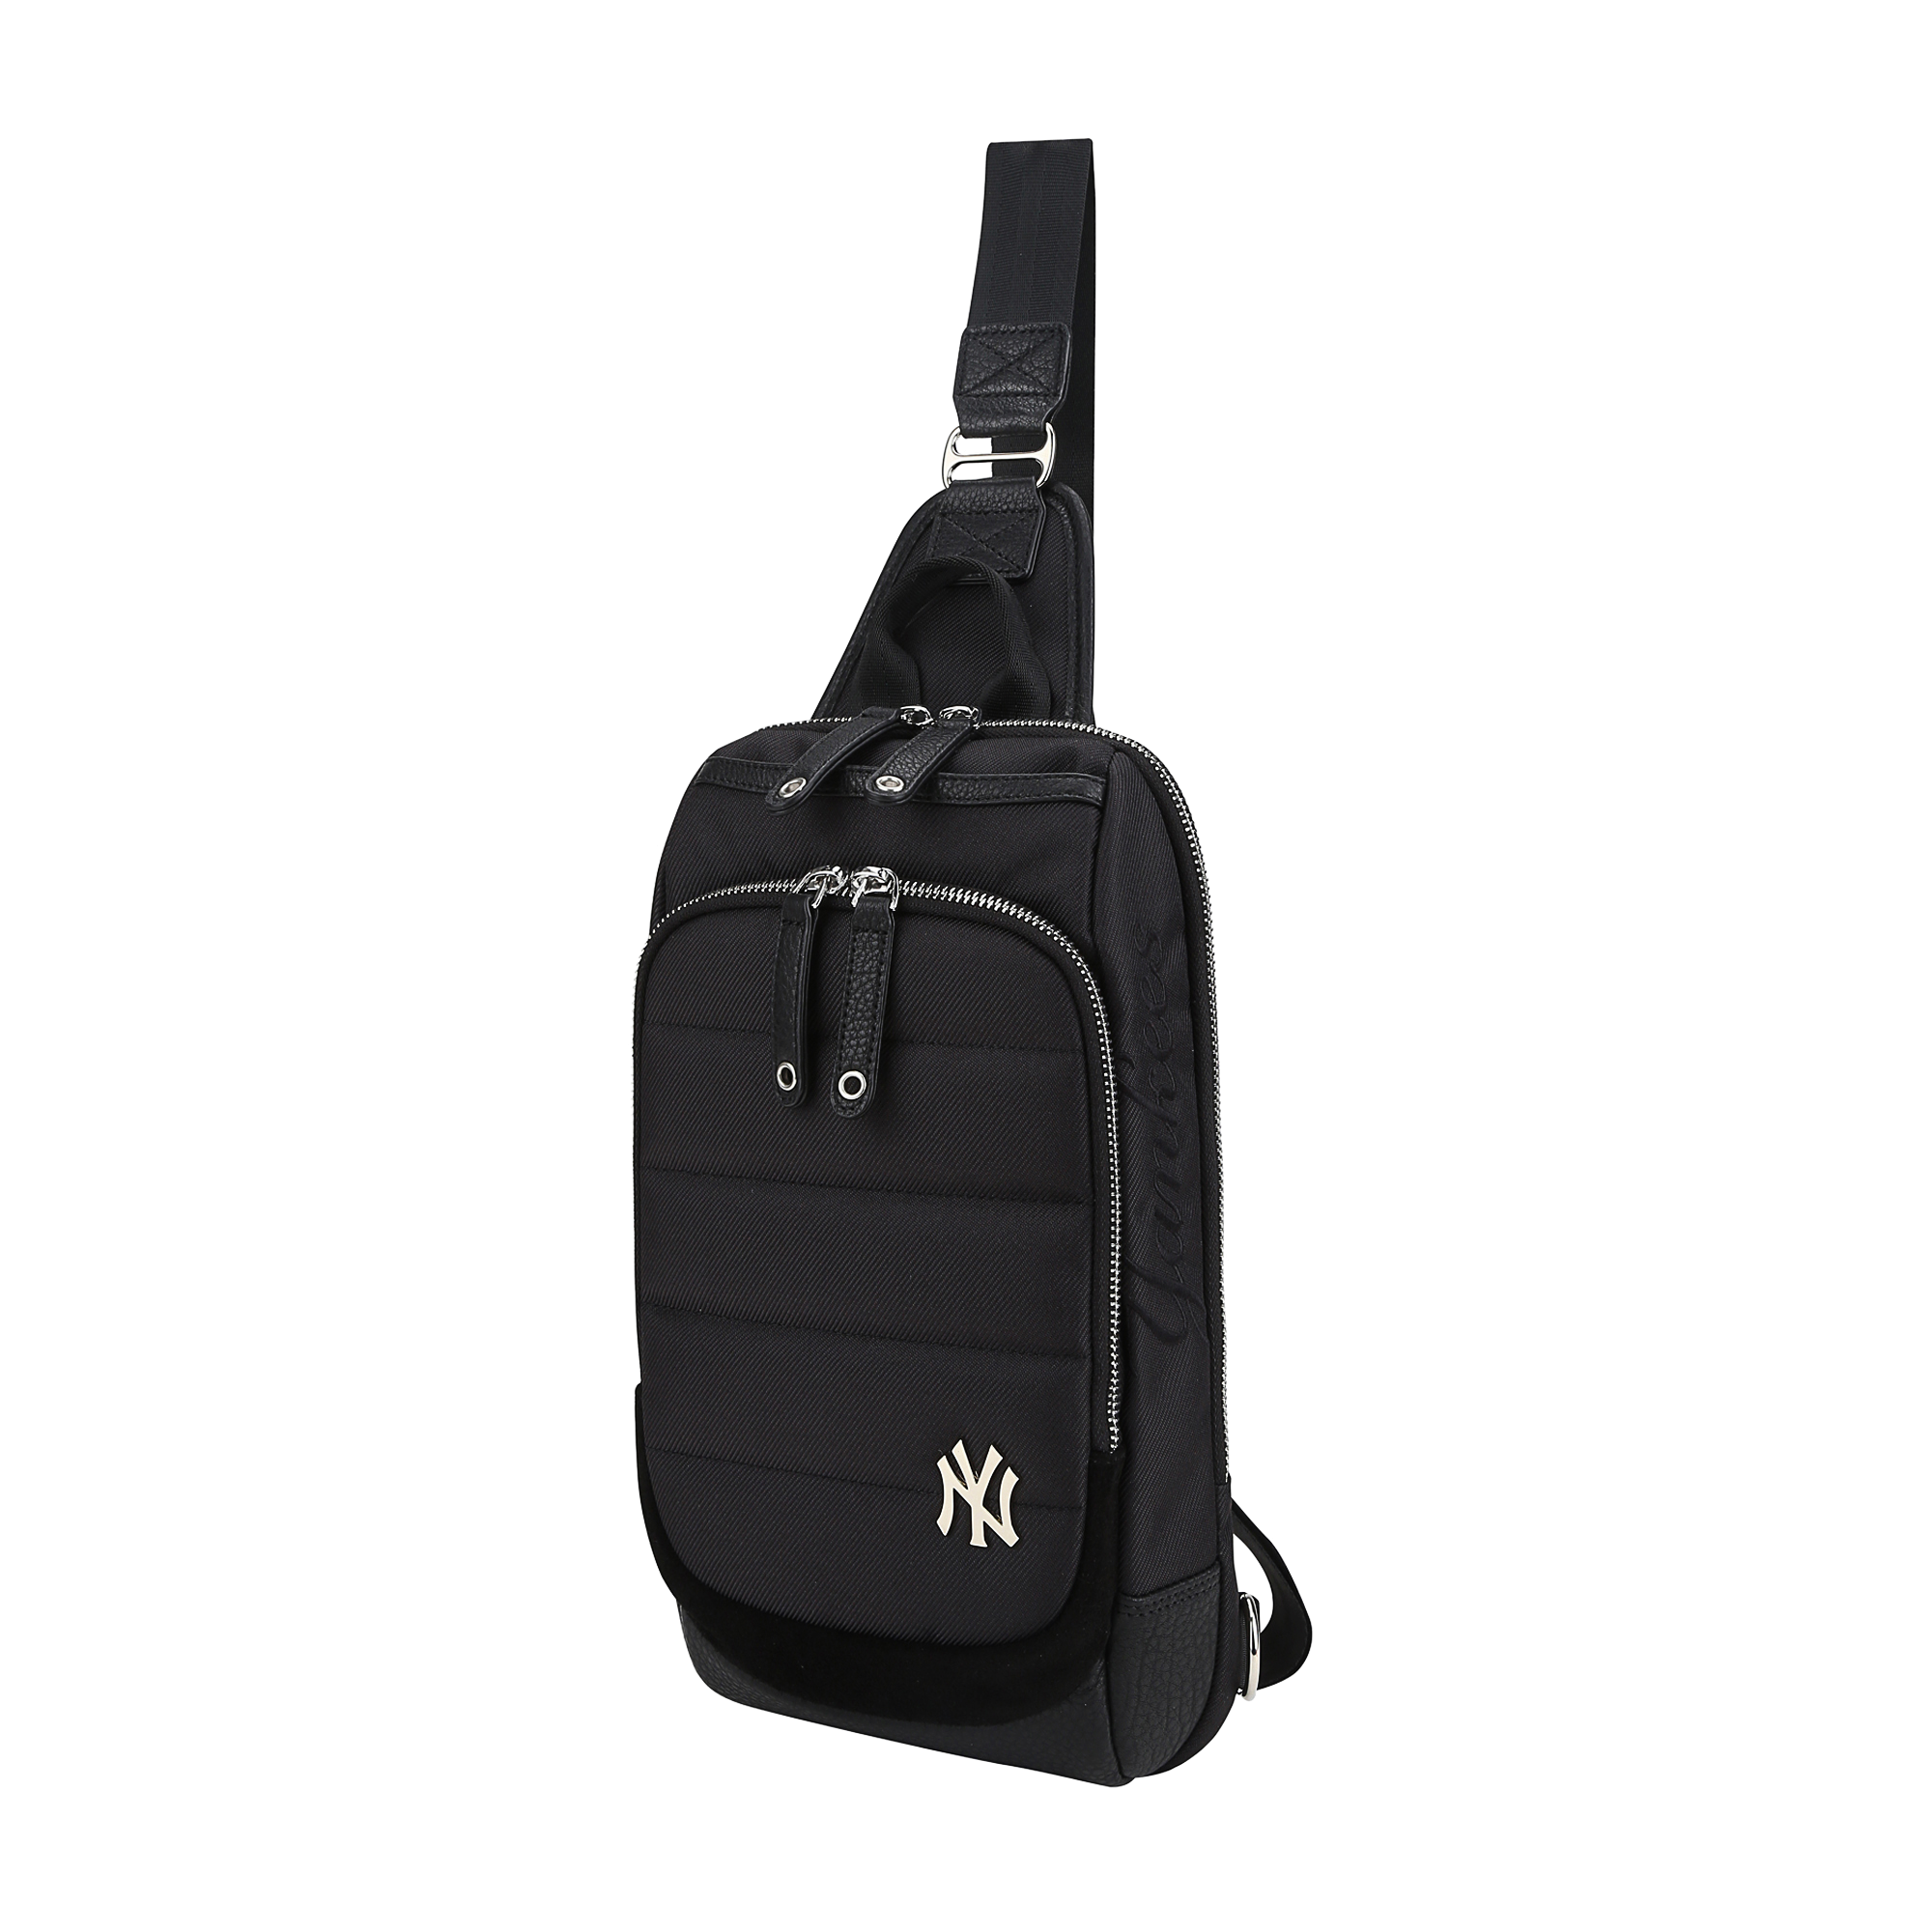 NEW YORK YANKEES PROTECTOR P SLING BAG